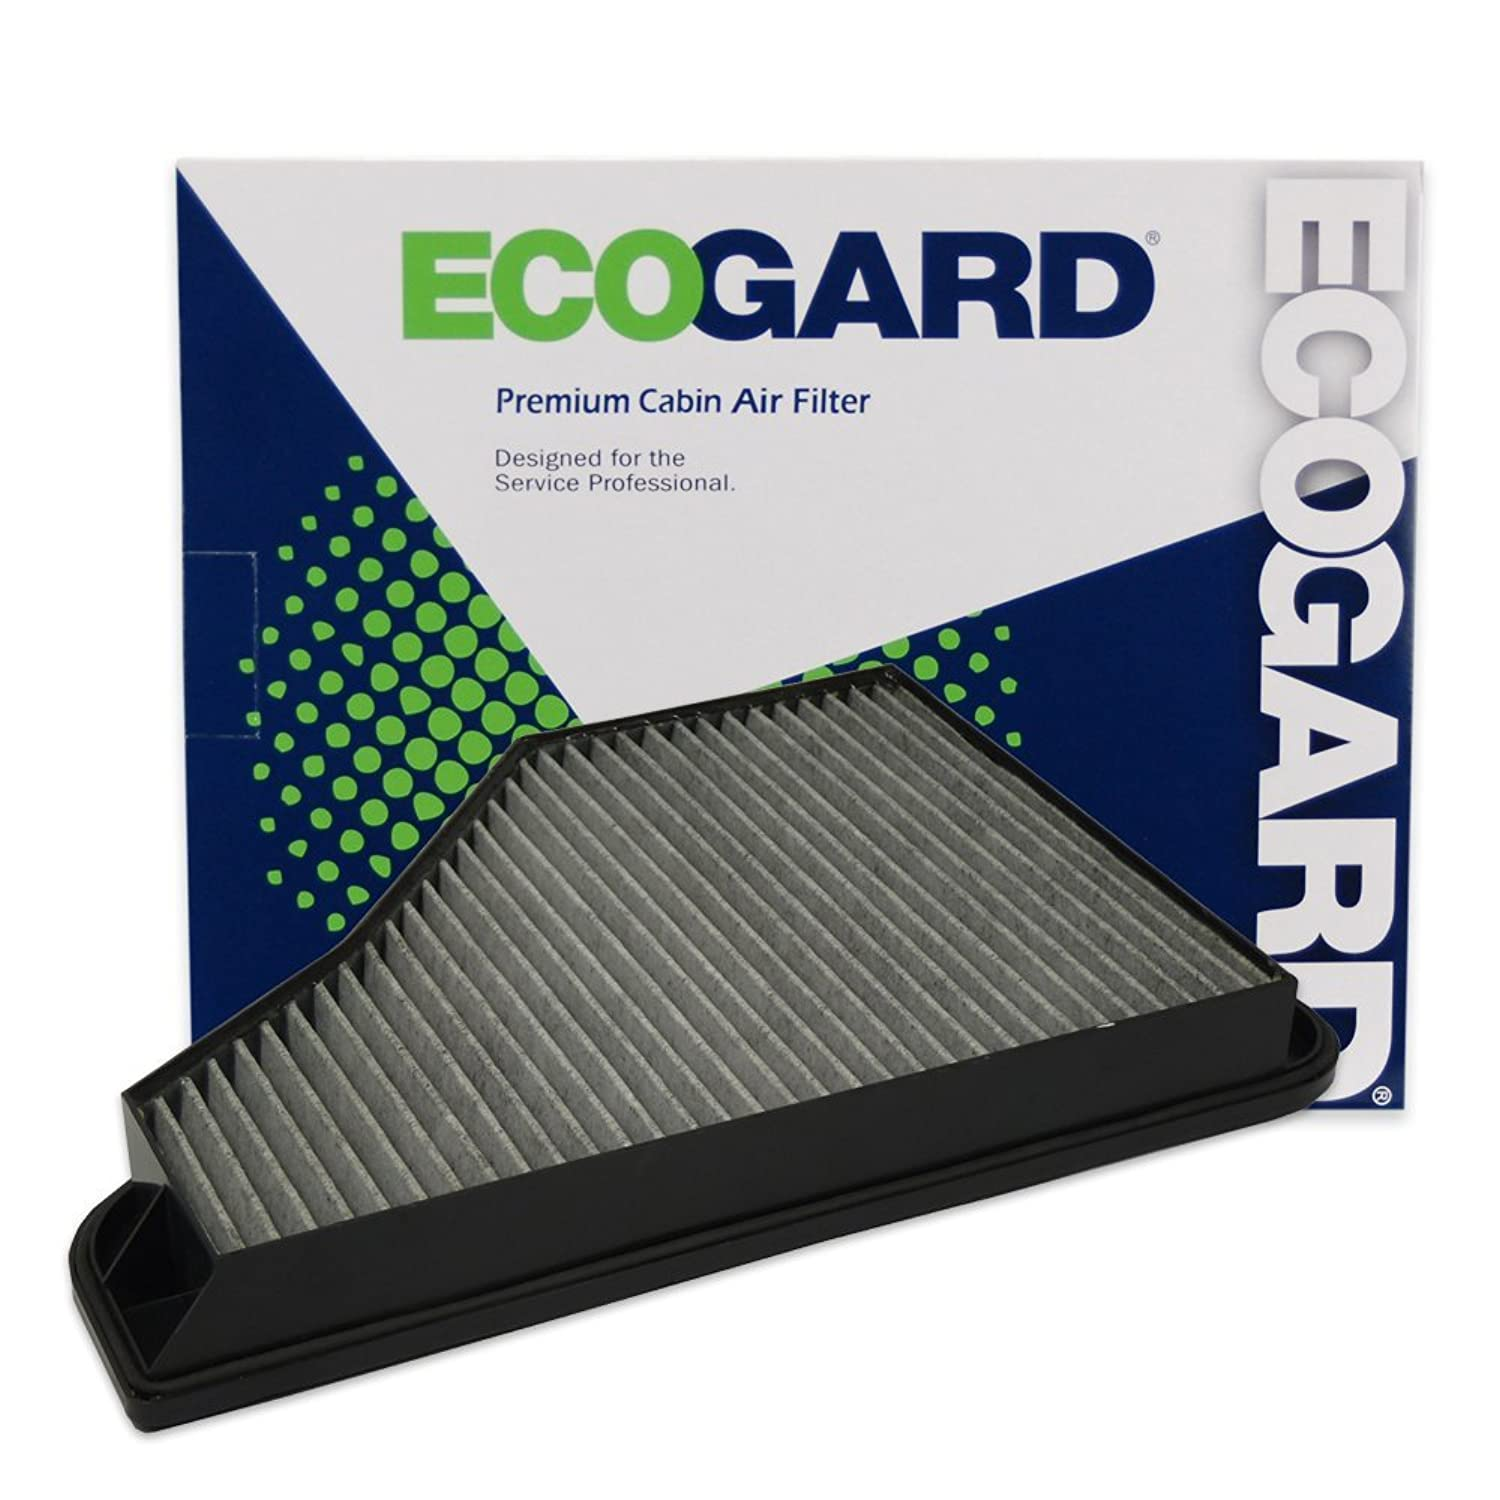 ECOGARD XC45460C Cabin Air Filter with Activated Carbon Odor Eliminator - Premium Replacement Fits Mercedes-Benz S320, S500, S420, S600, S350